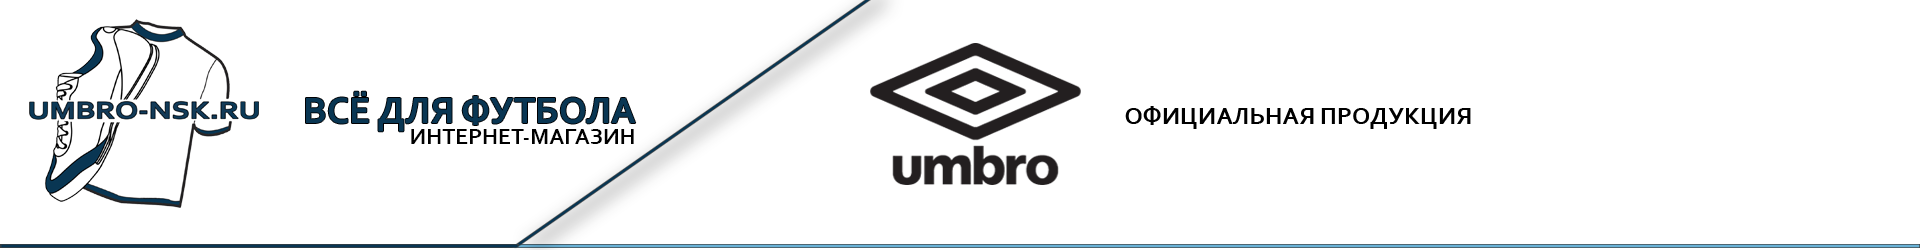 Кроссовки Umbro MT Leisure Shoe